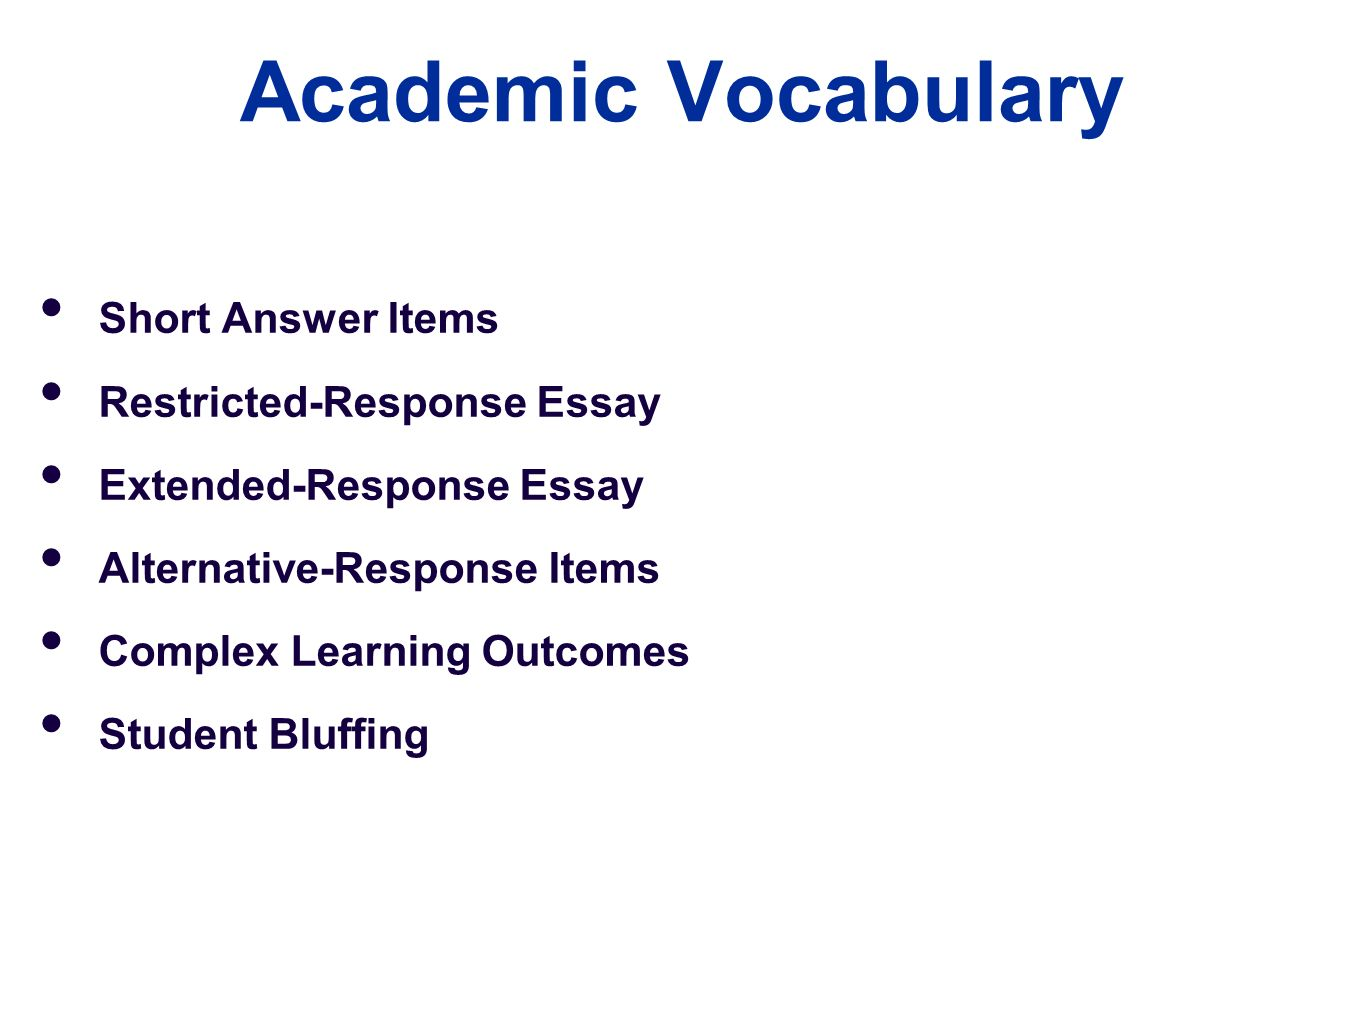 test and essay items Review these sample essay questions and answers before you write you college   to test your skills at problem-solving and check how up-to-date you are on.